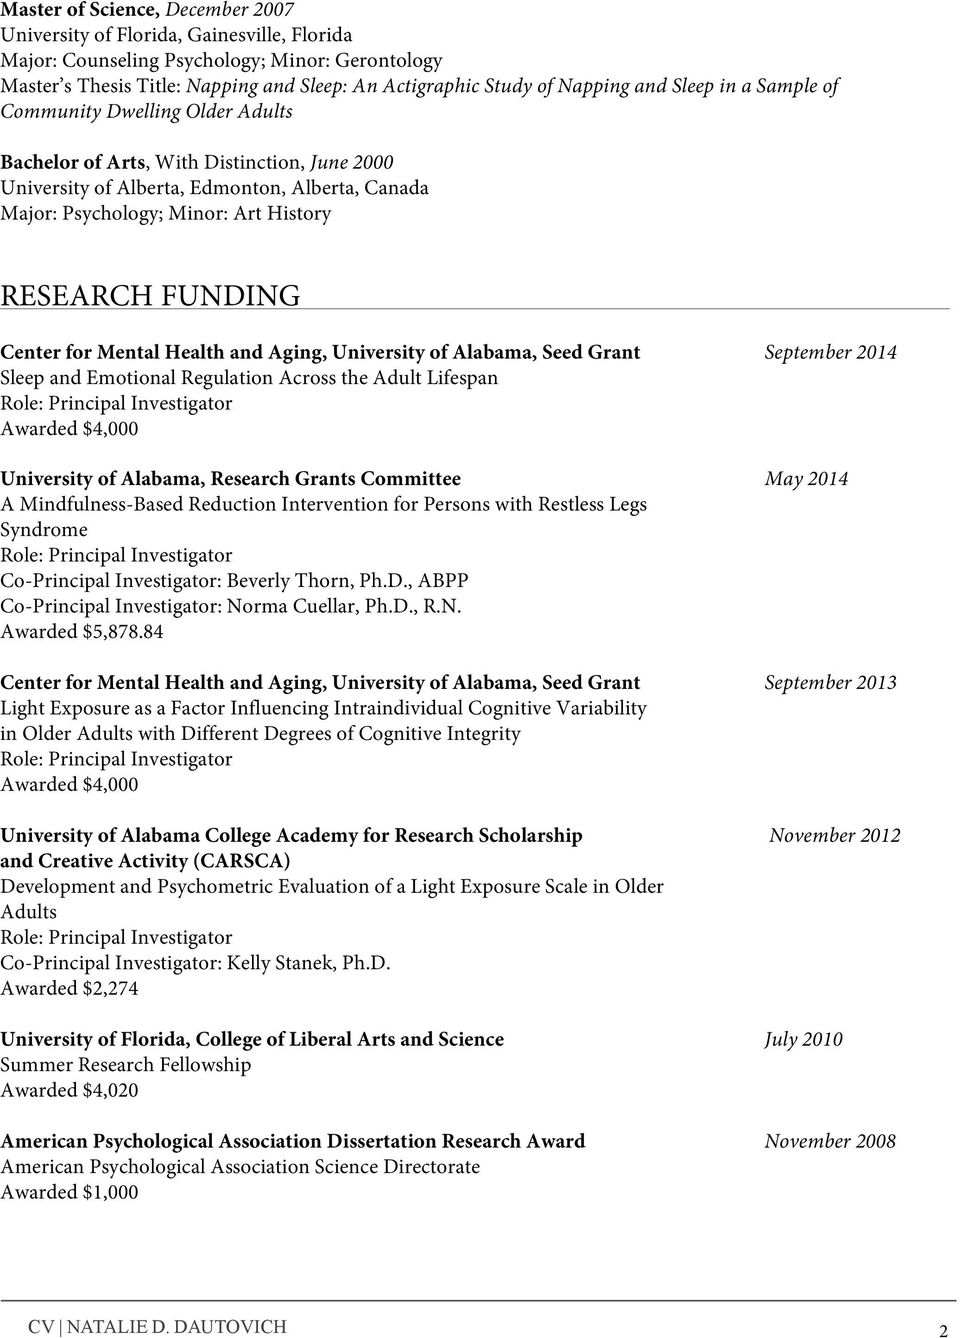 FUNDING Center for Mental Health and Aging, University of Alabama, Seed Grant September 2014 Sleep and Emotional Regulation Across the Adult Lifespan Role: Principal Investigator Awarded $4,000